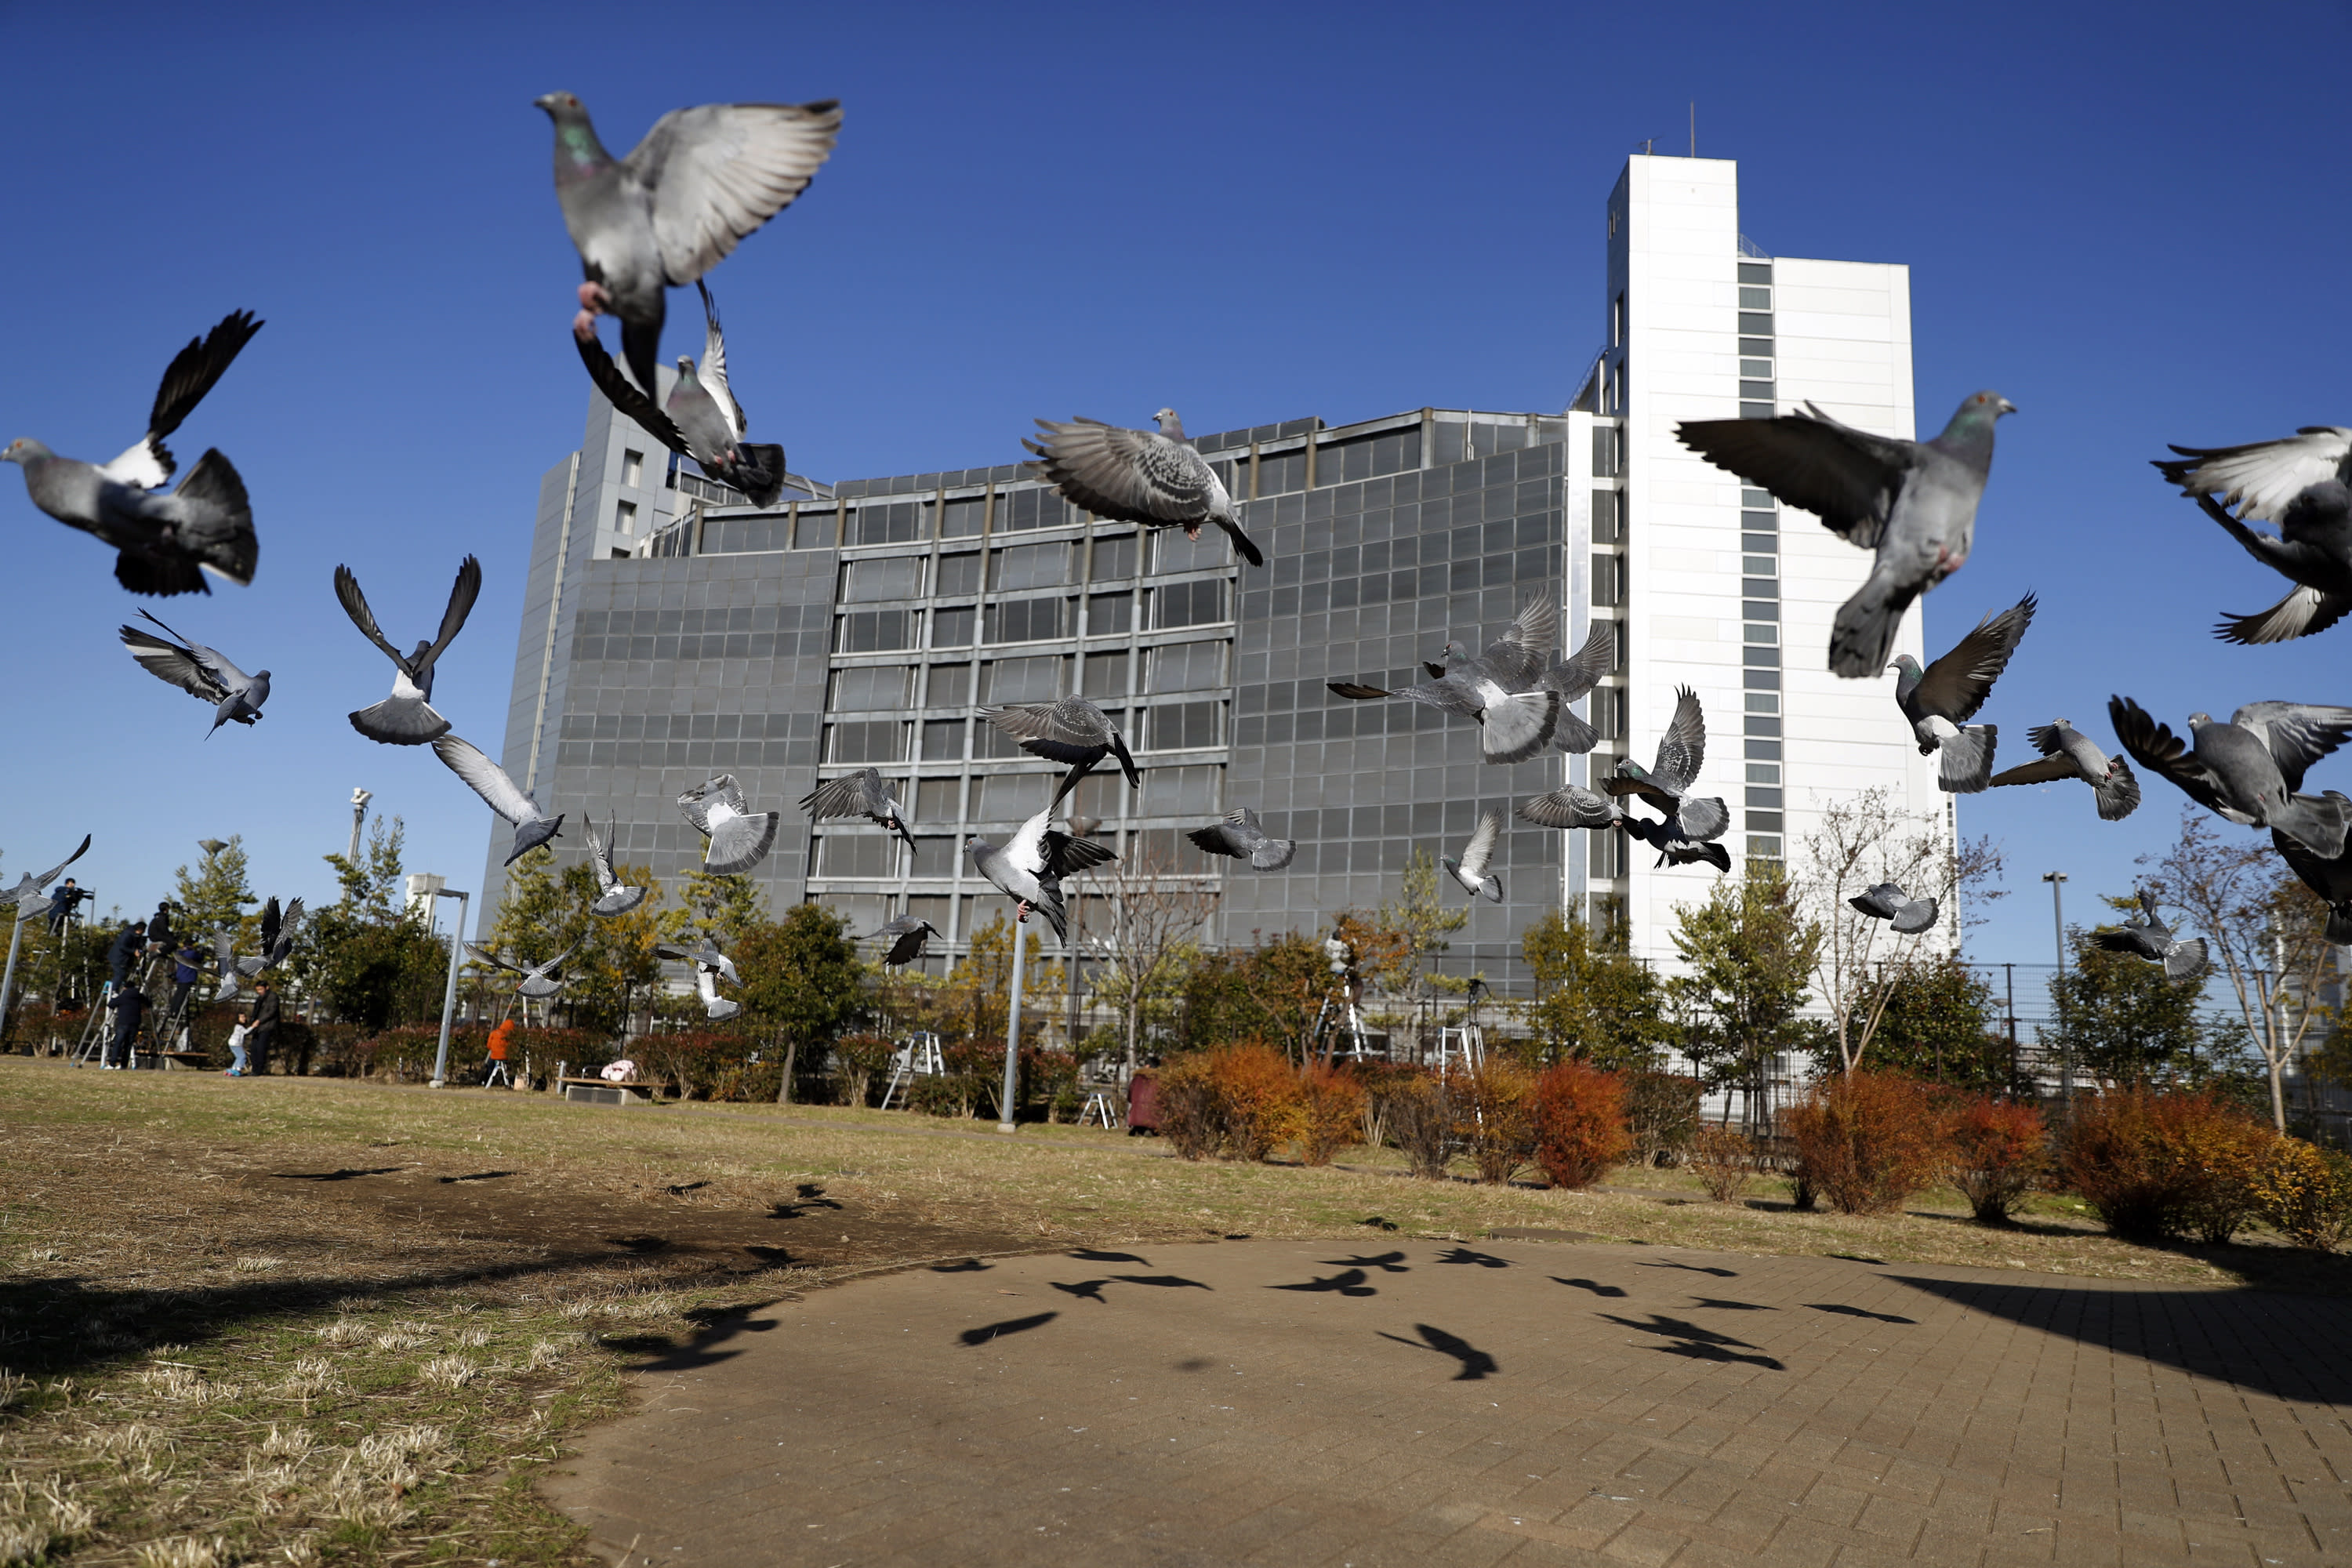 FILE - In this Dec. 25, 2018, file photo, pigeons fly near Tokyo Detention Center, where former Nissan chairman Carlos Ghosn is detained, in Tokyo. Ghosn on Monday, Jan. 21, 2019 asked for his release on bail from a two-month detention in Japan, promising he will report to prosecutors daily and wear an electronic monitoring ankle bracelet. (AP Photo/Eugene Hoshiko, File)